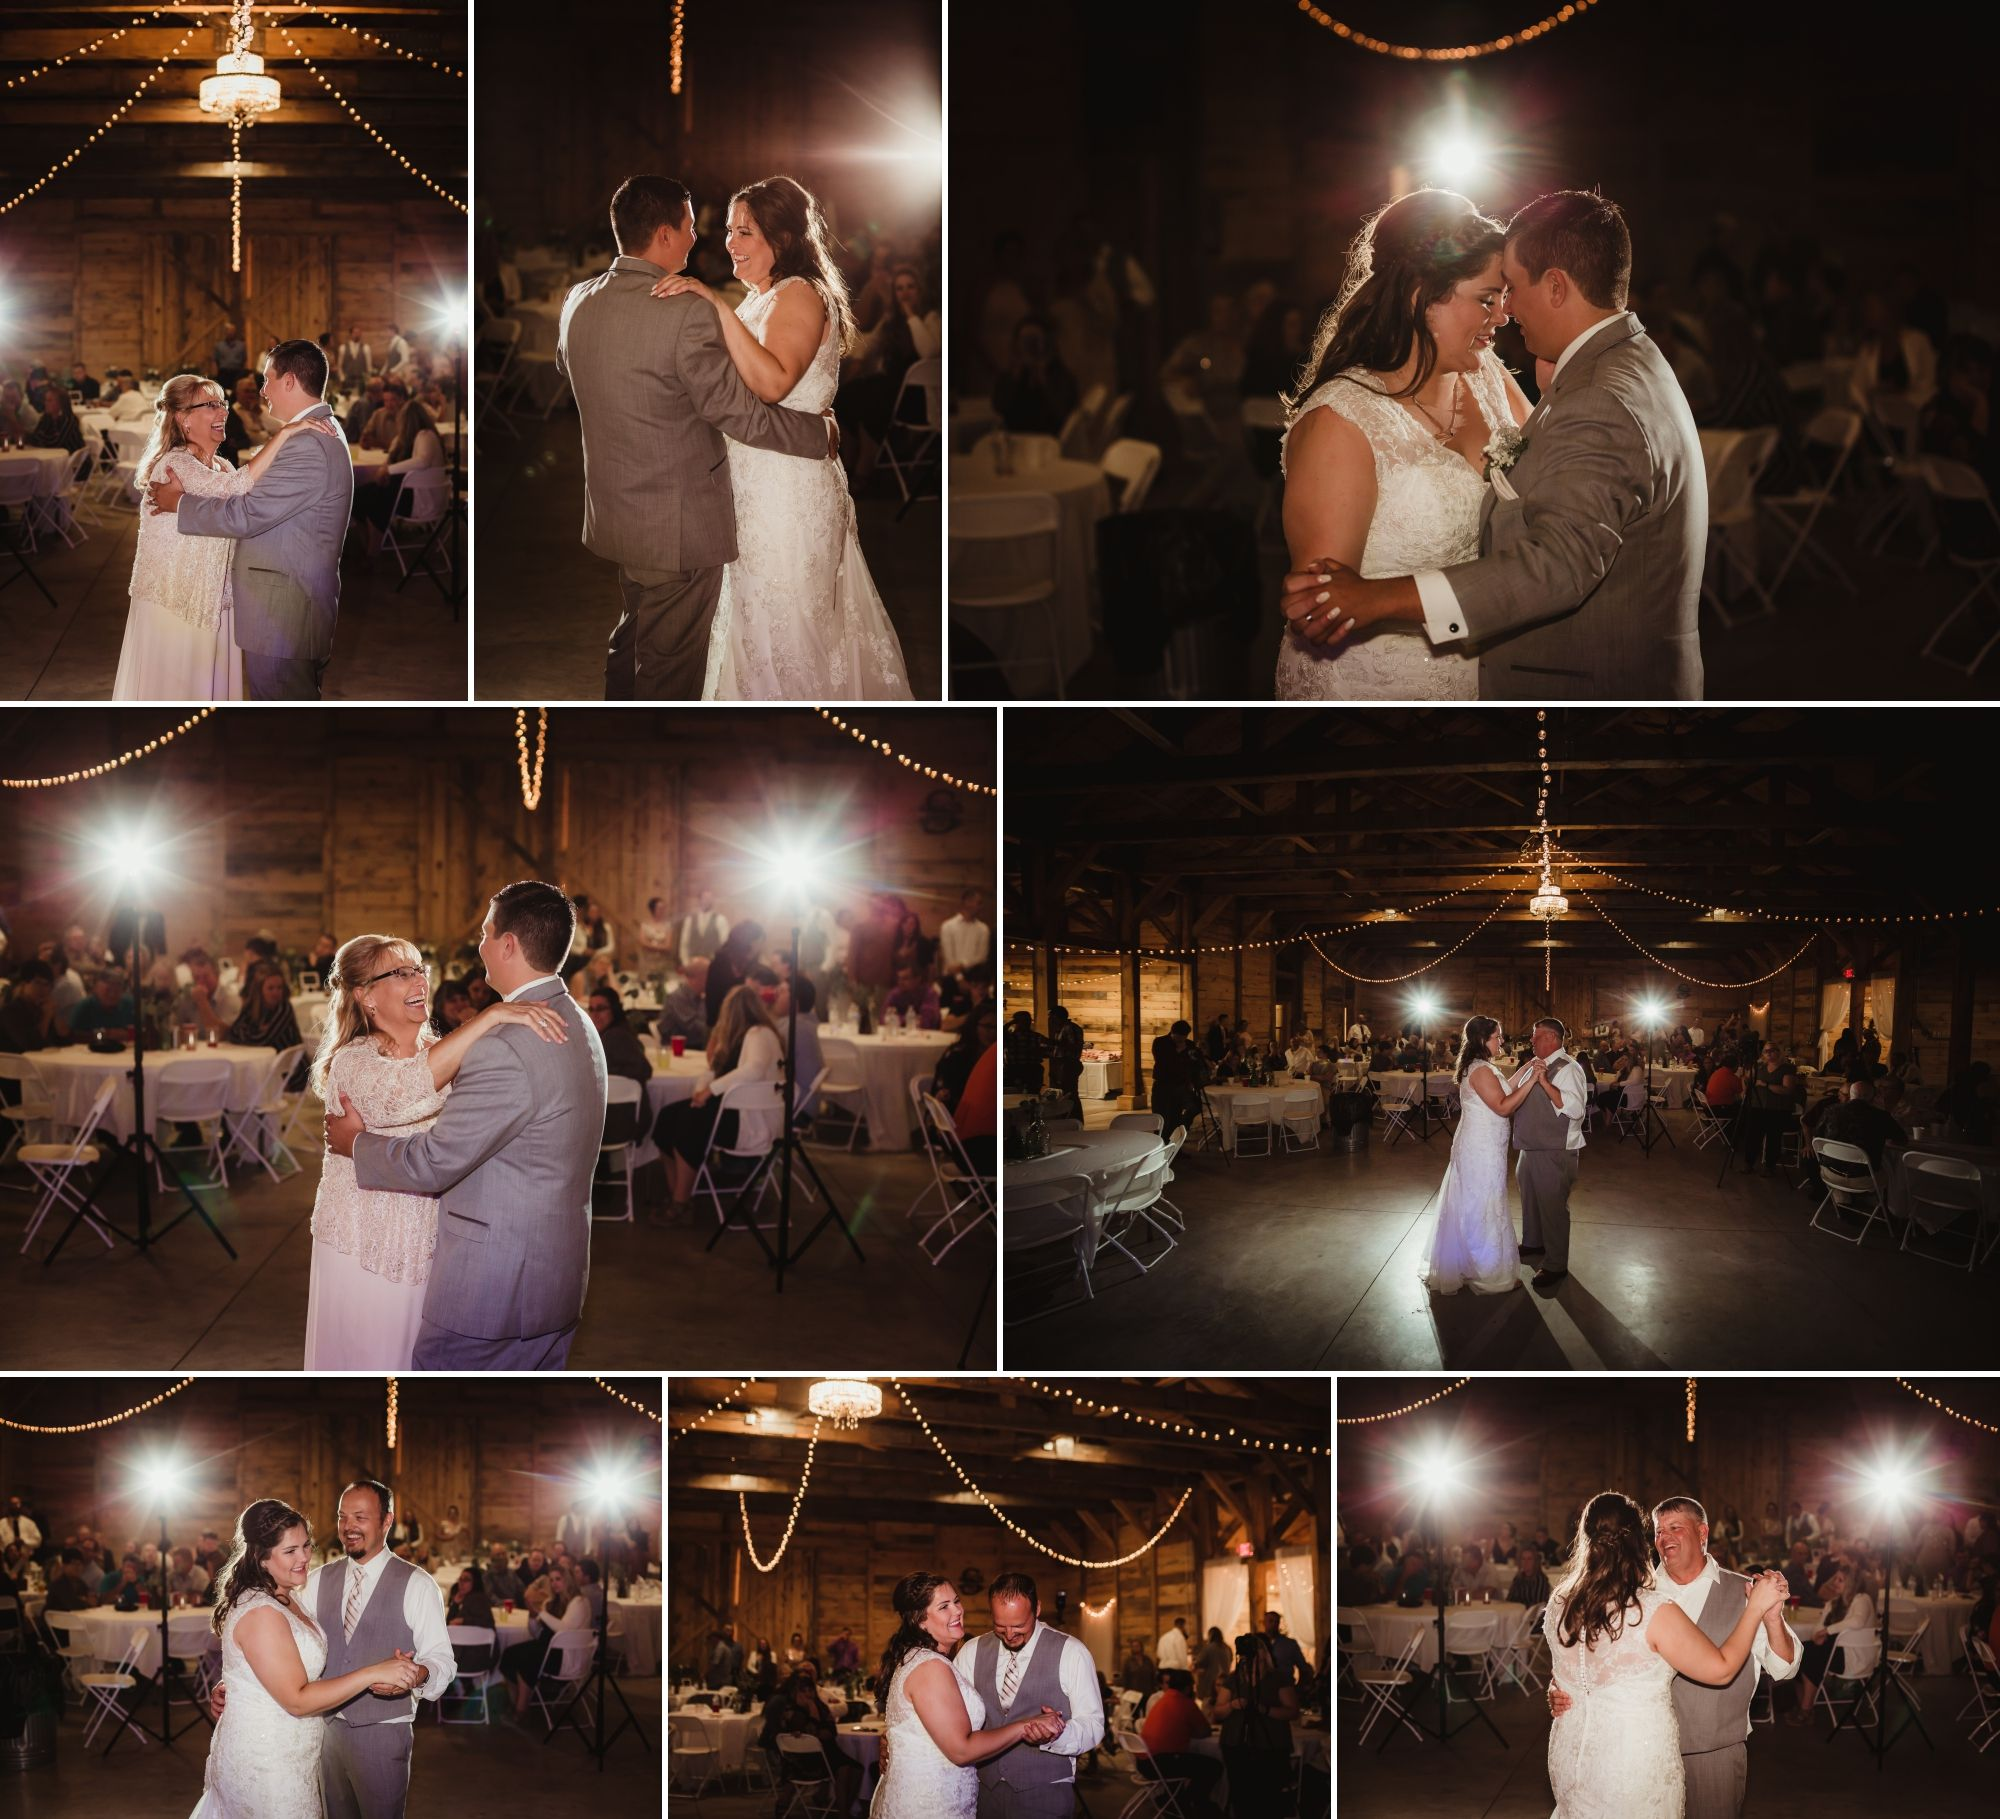 Collage of all of the formal dances inside the barn. Lights are strung from the ceiling.